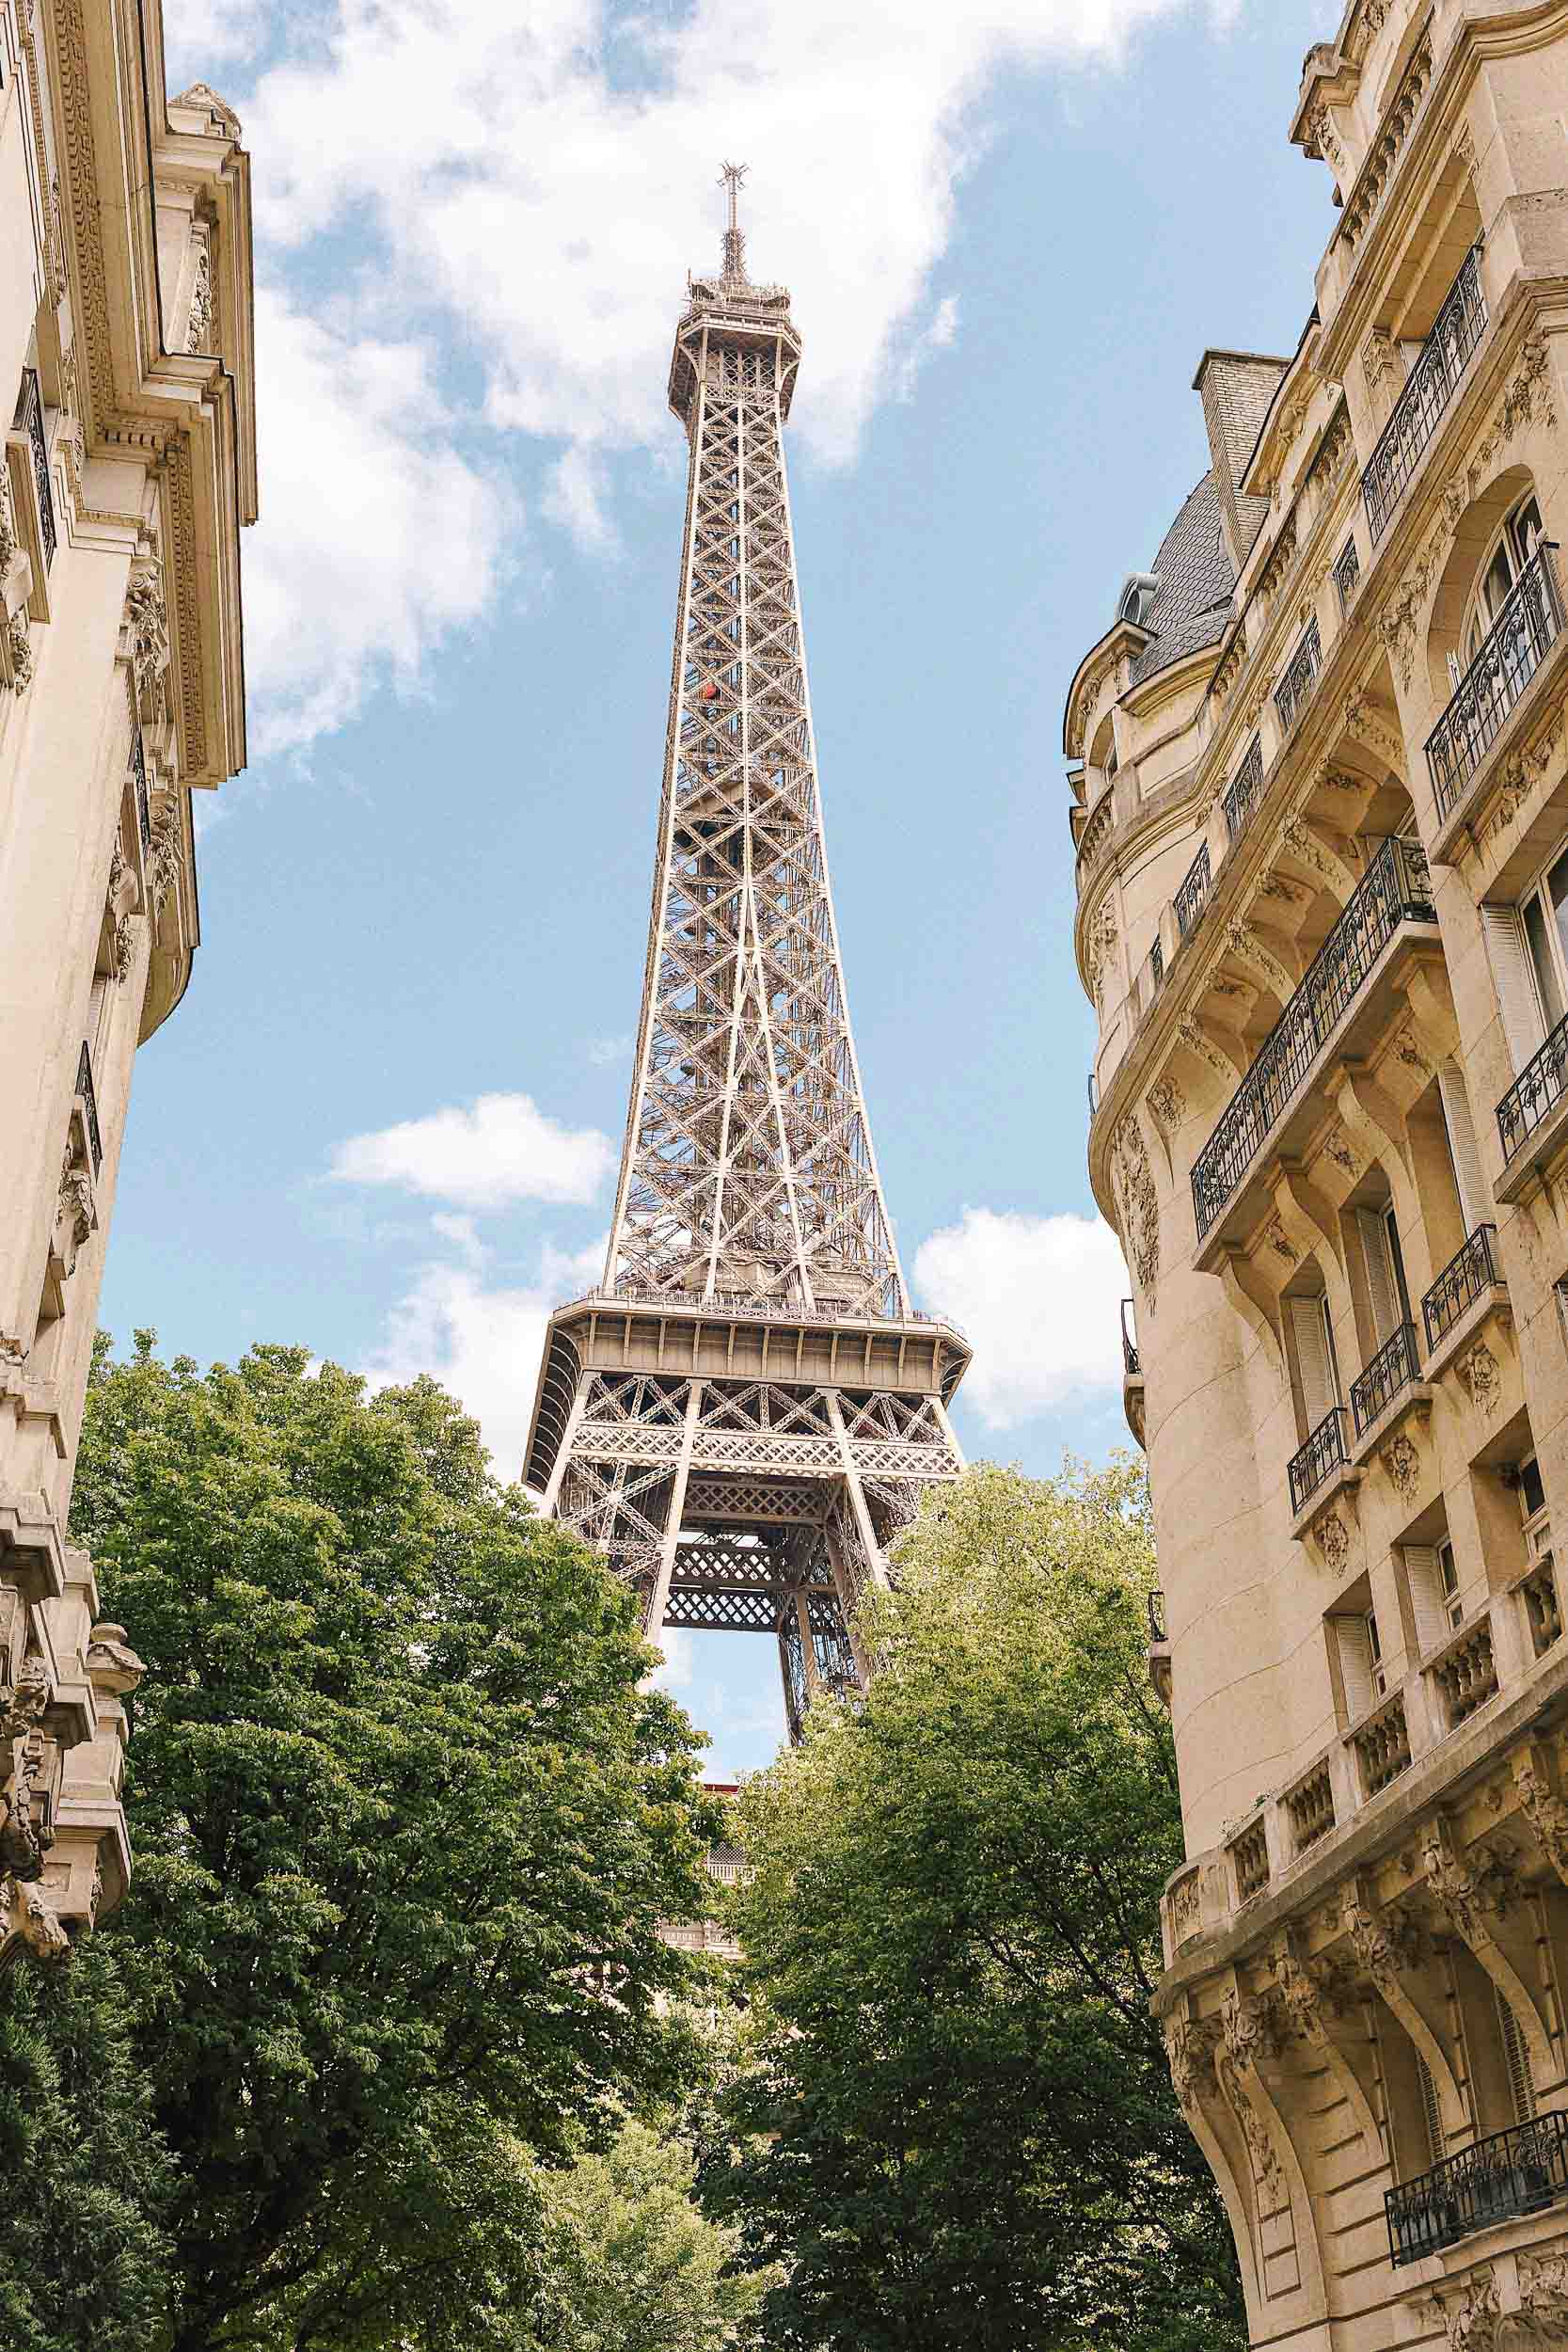 A guide to Paris sights you should not miss